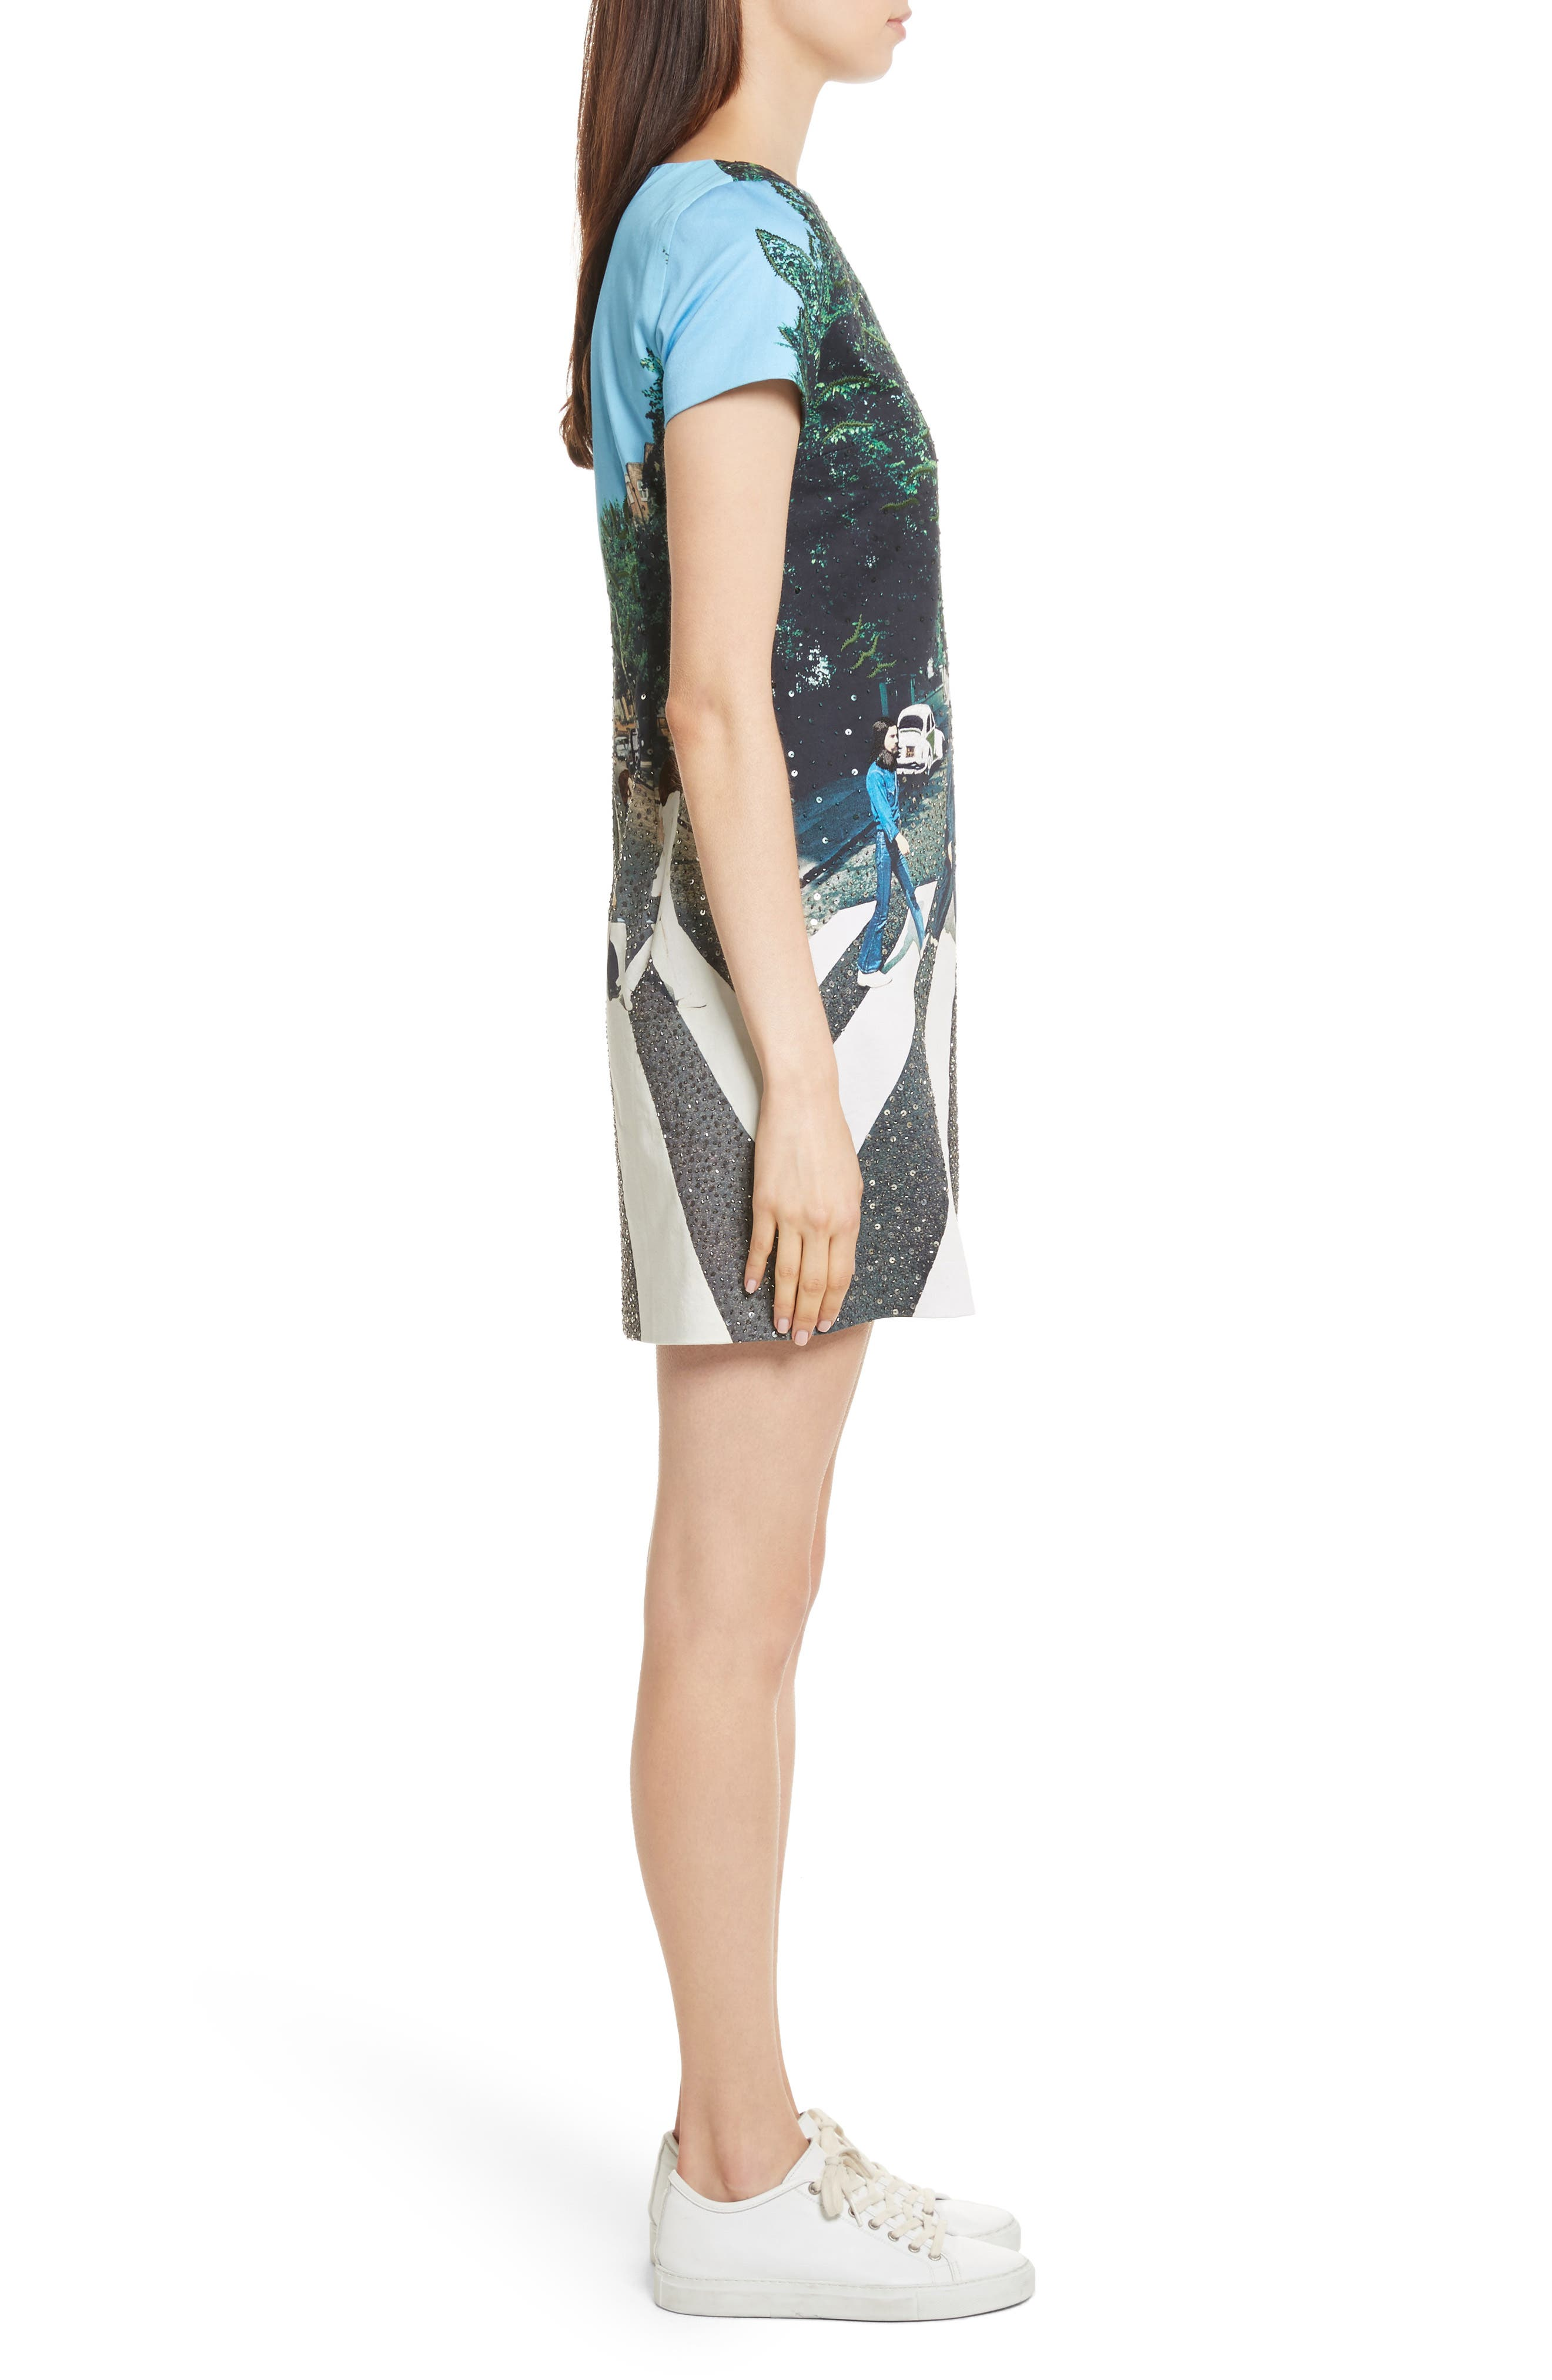 ALICE + OLIVIA,                             AO x The Beatles Sequined Shift Dress,                             Alternate thumbnail 3, color,                             473